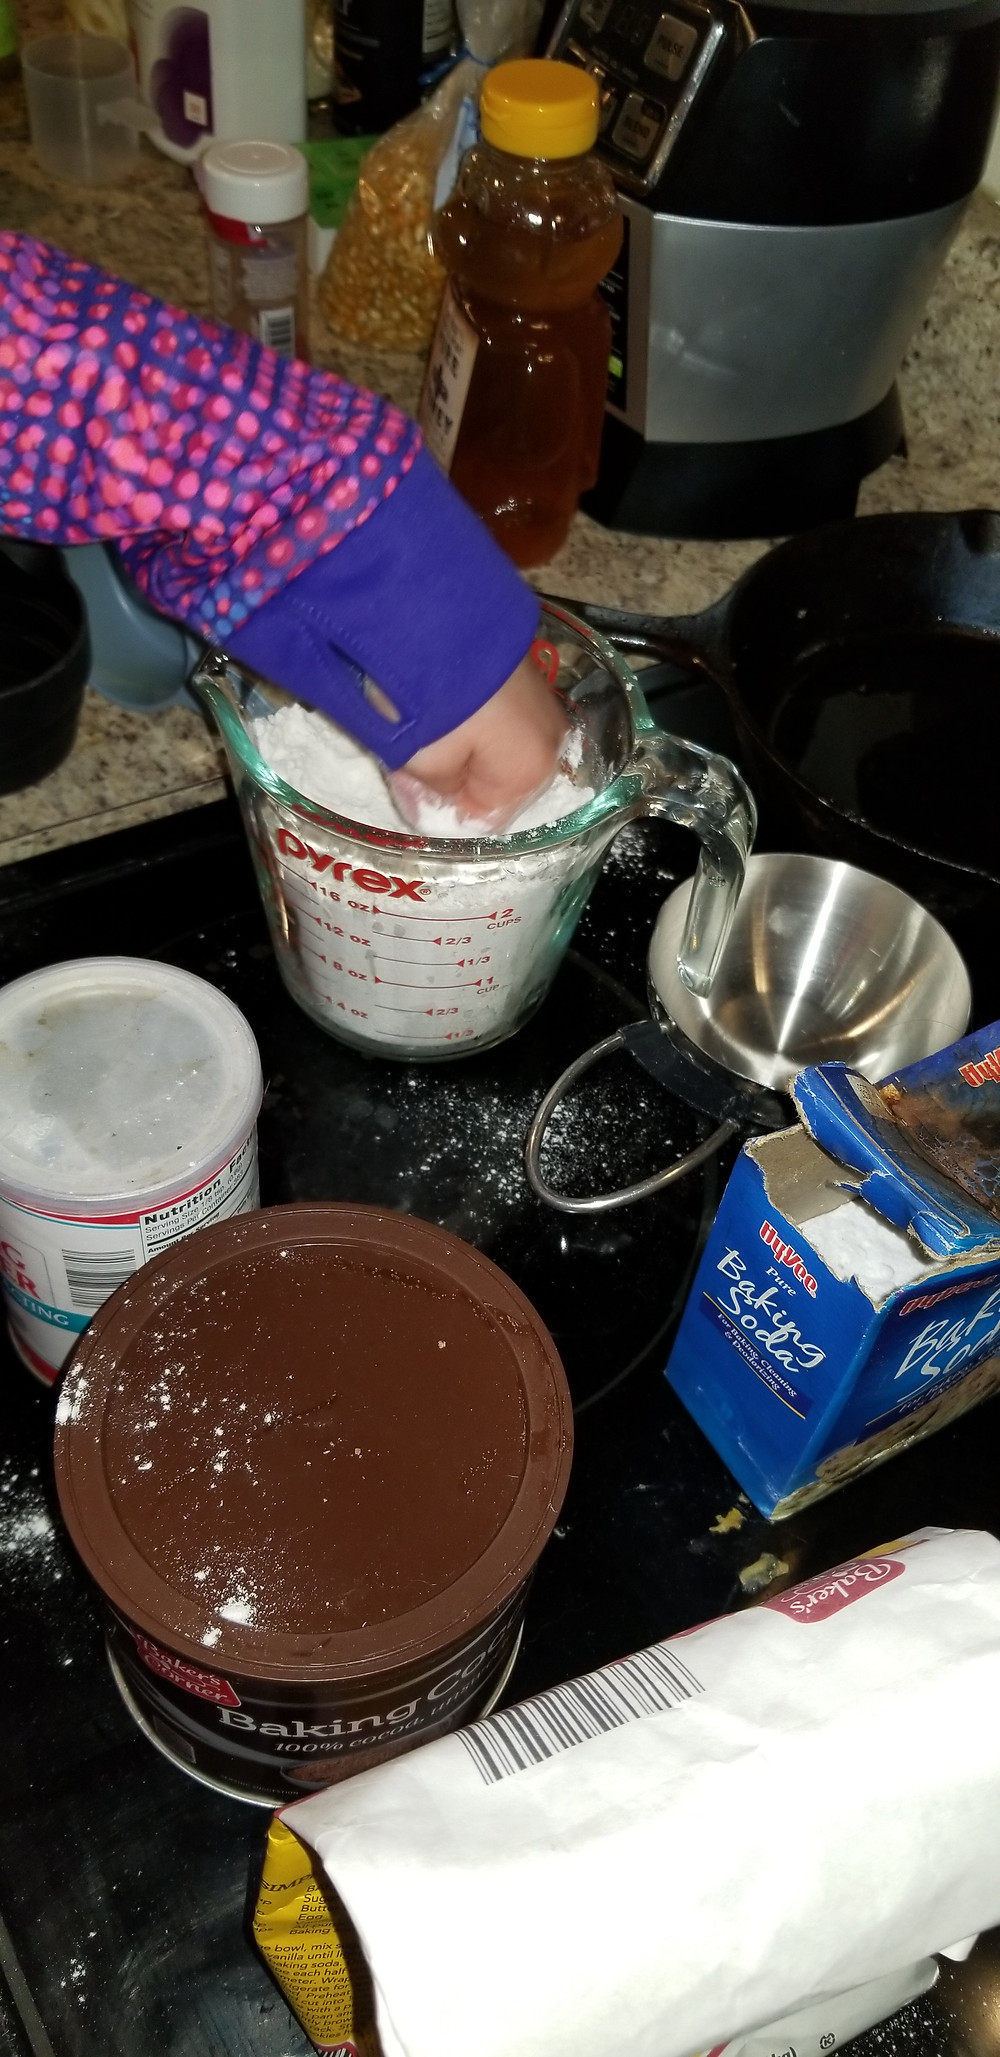 overcrowded counter with sprinkles, honey, Ninja blender, girl's arm in a liquid measuring cup filled with flour